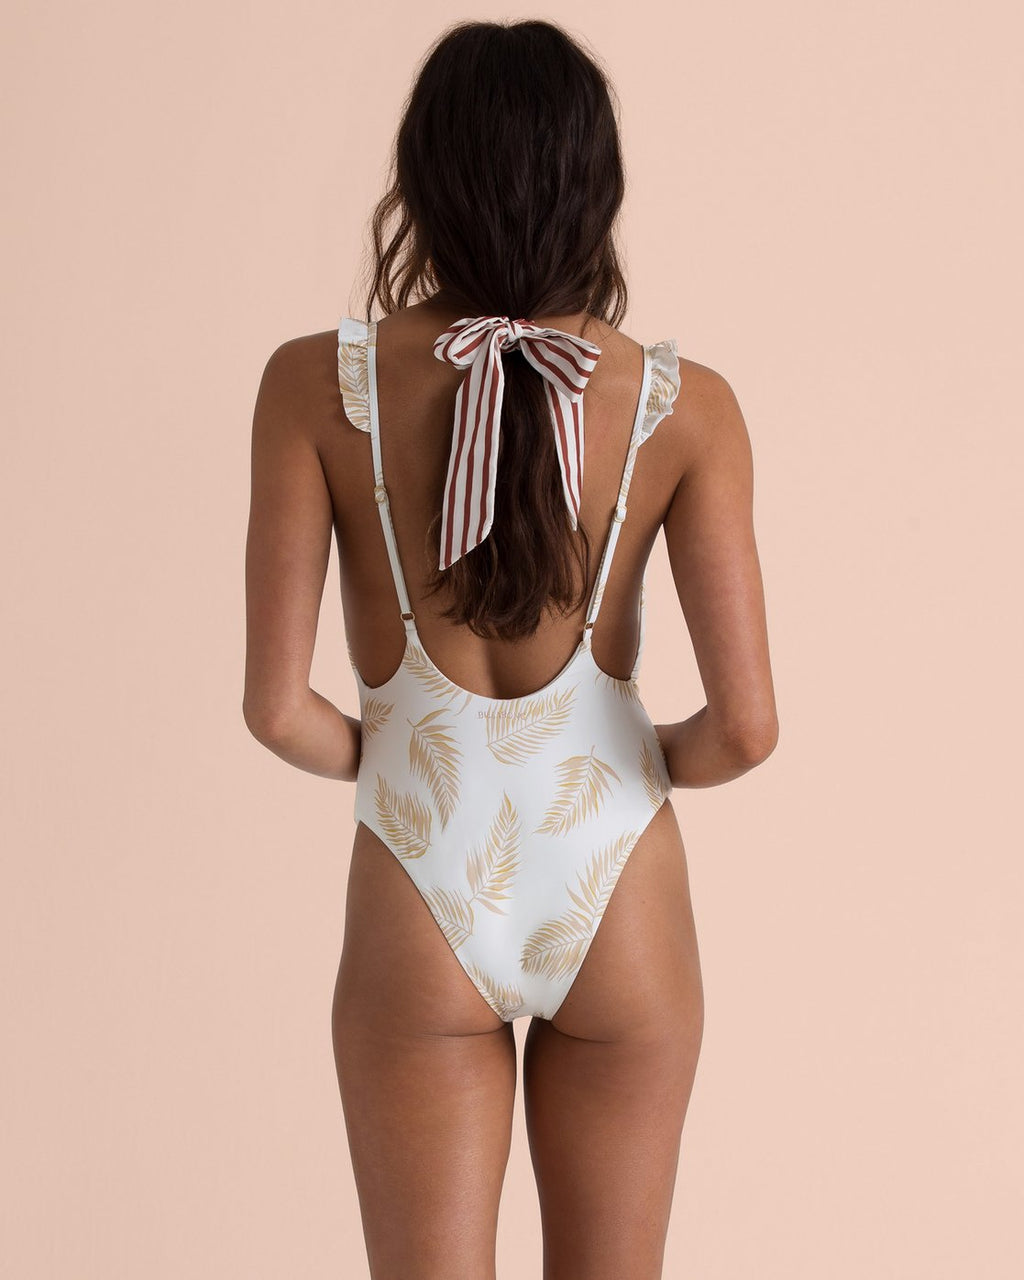 BILLABONG X SINCERELY JULES DOS PALMAS ONE PIECE SWIM